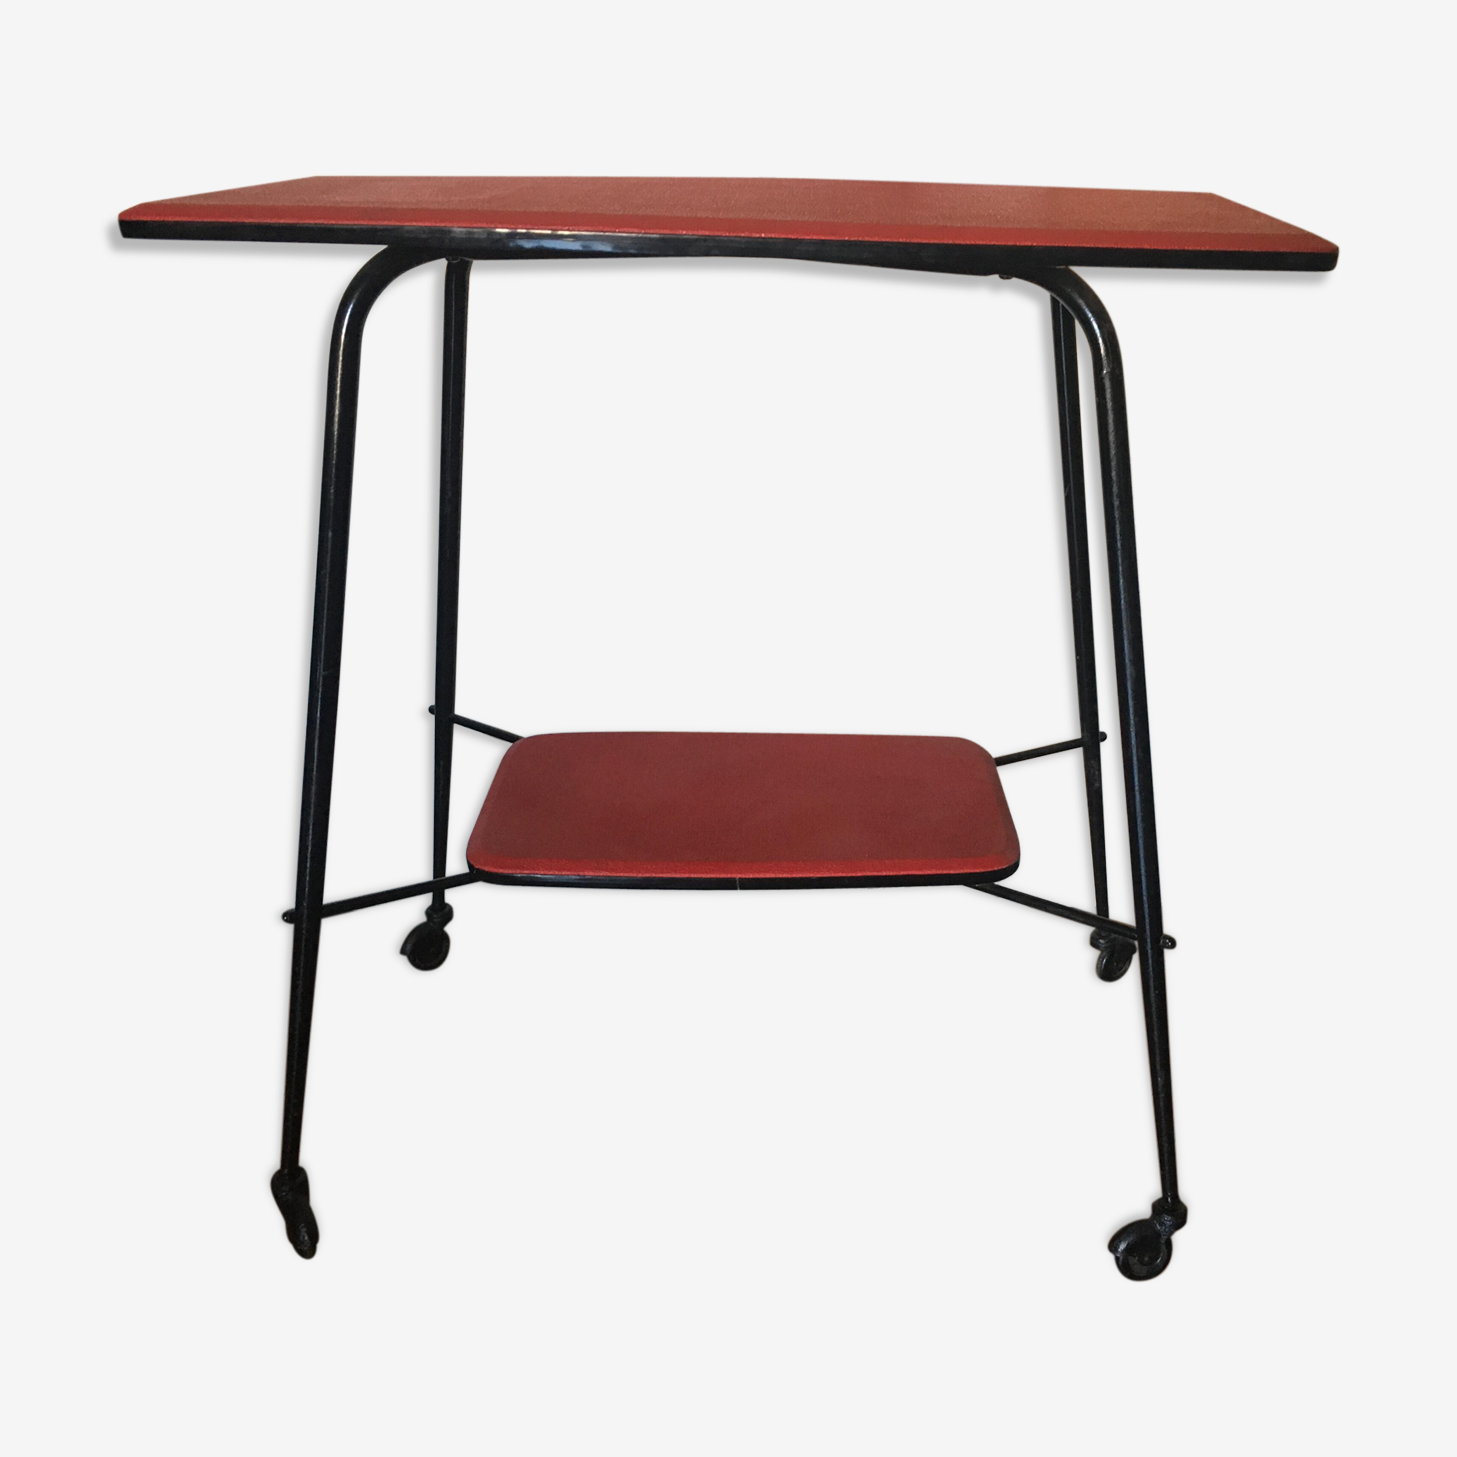 Serving table